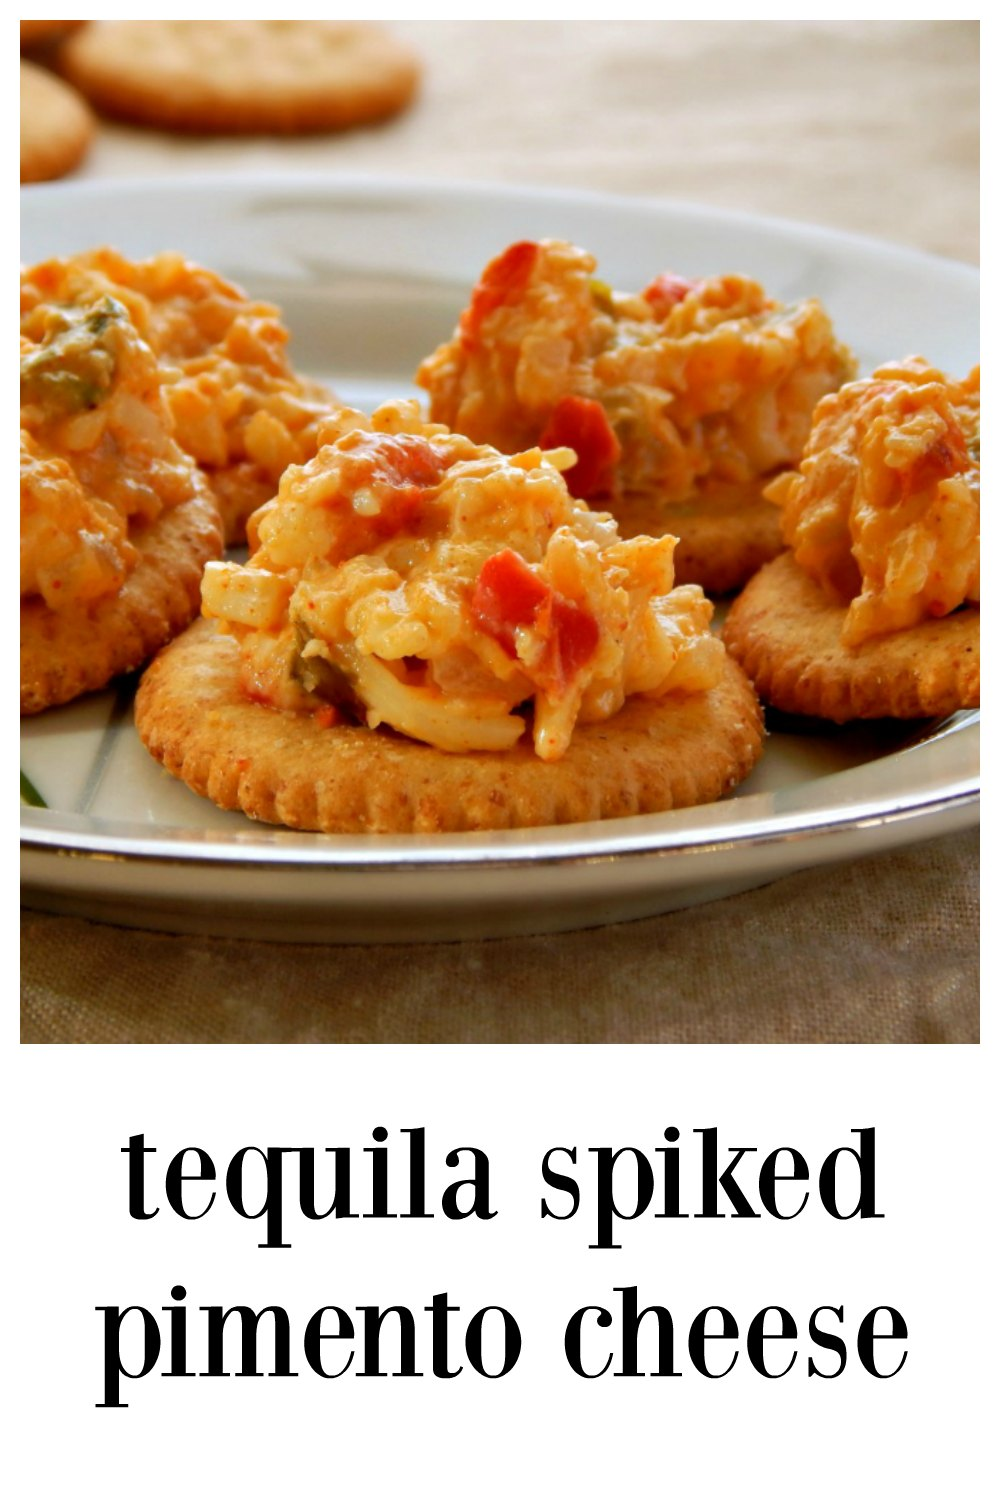 White Cheddar, a touch of tequila, lots of red pepper flavor and a little jalapeno goes into this Tequila Spiked Pimento Cheese! Fabulous warm or cold! Try on crackers, broiled on crostini or over French fries! #TequilaPimentoCheese #PimentoCheese #GameDayAppetizers